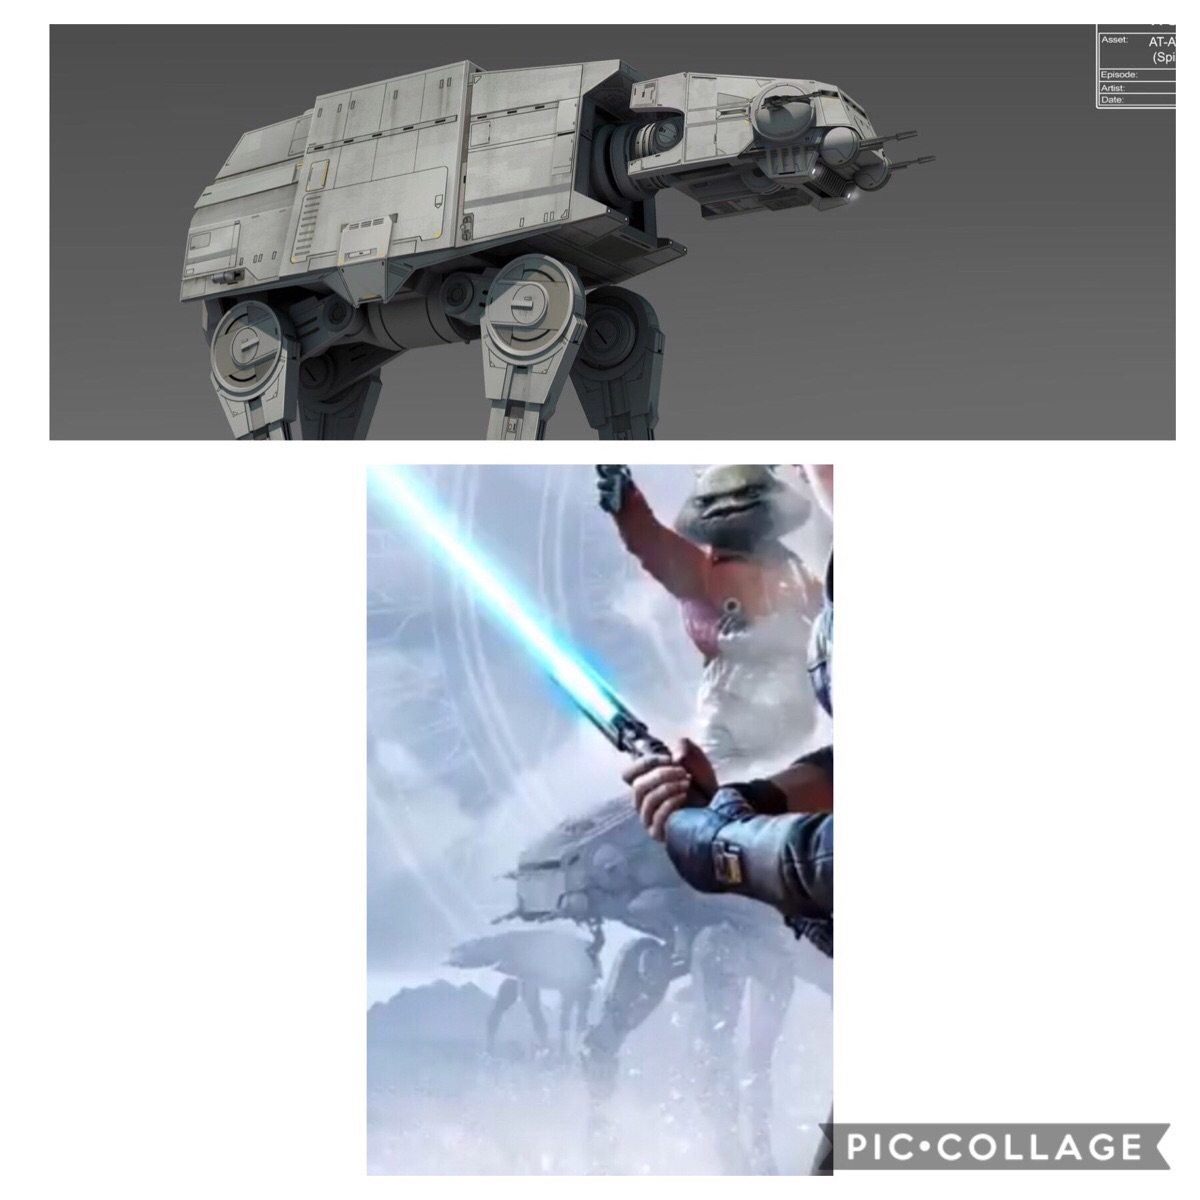 Jedi Fallen Order has the Rebels AT-AT. This kind of Star Wars continuity is what I live for.